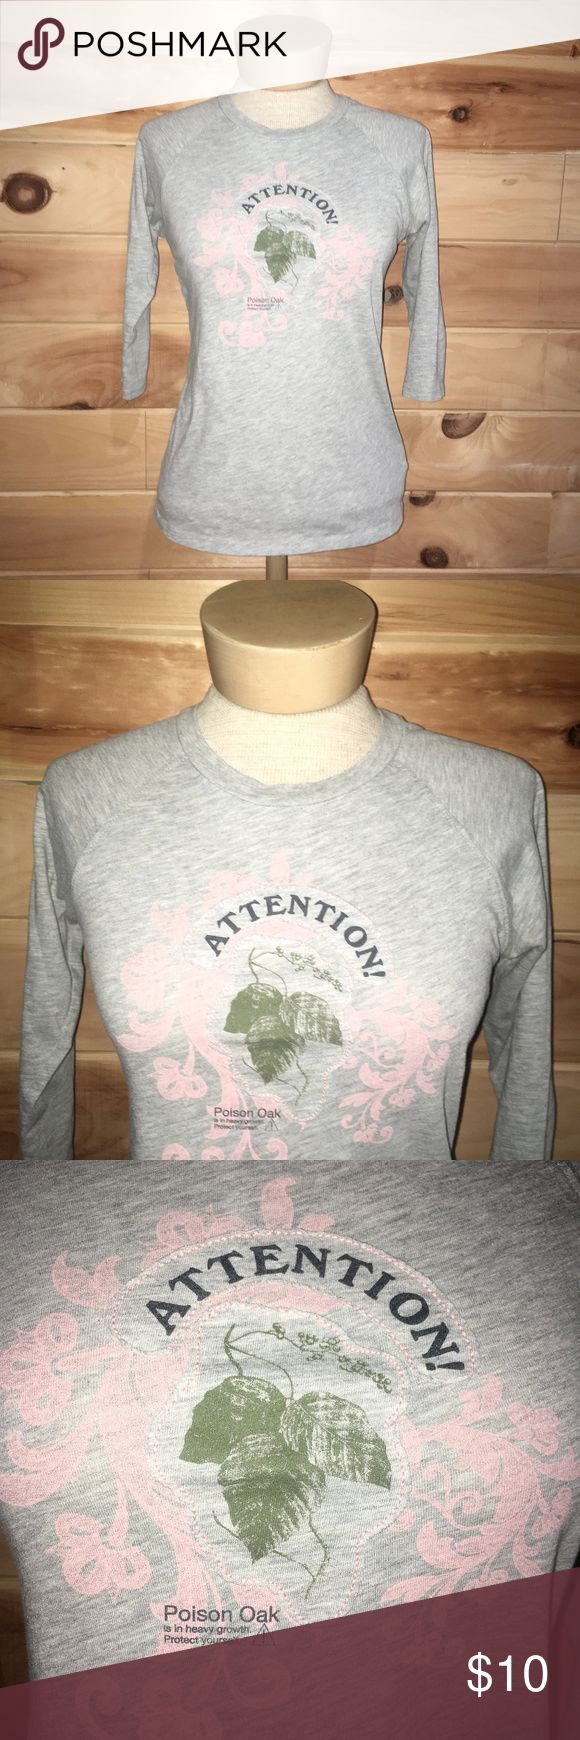 """Old Navy Attention Poison Oak 3/4 Sleeve Shirt Old Navy attention poison oak 3/4 sleeve shirt. Size small. Gray crew neck shirt. Front has a picture of a poison oak leave and says 'attention' in big letters towards the top. Below the leaf it says 'poison oak is in heavy growth, protect yourself'. Also has a little pink design behind the leaf. There's a very small stain below the pink design but it isn't super noticeable. 65% cotton and 35% polyester. 32"""" bust. 23.5"""" length. 14"""" sleeves. No…"""